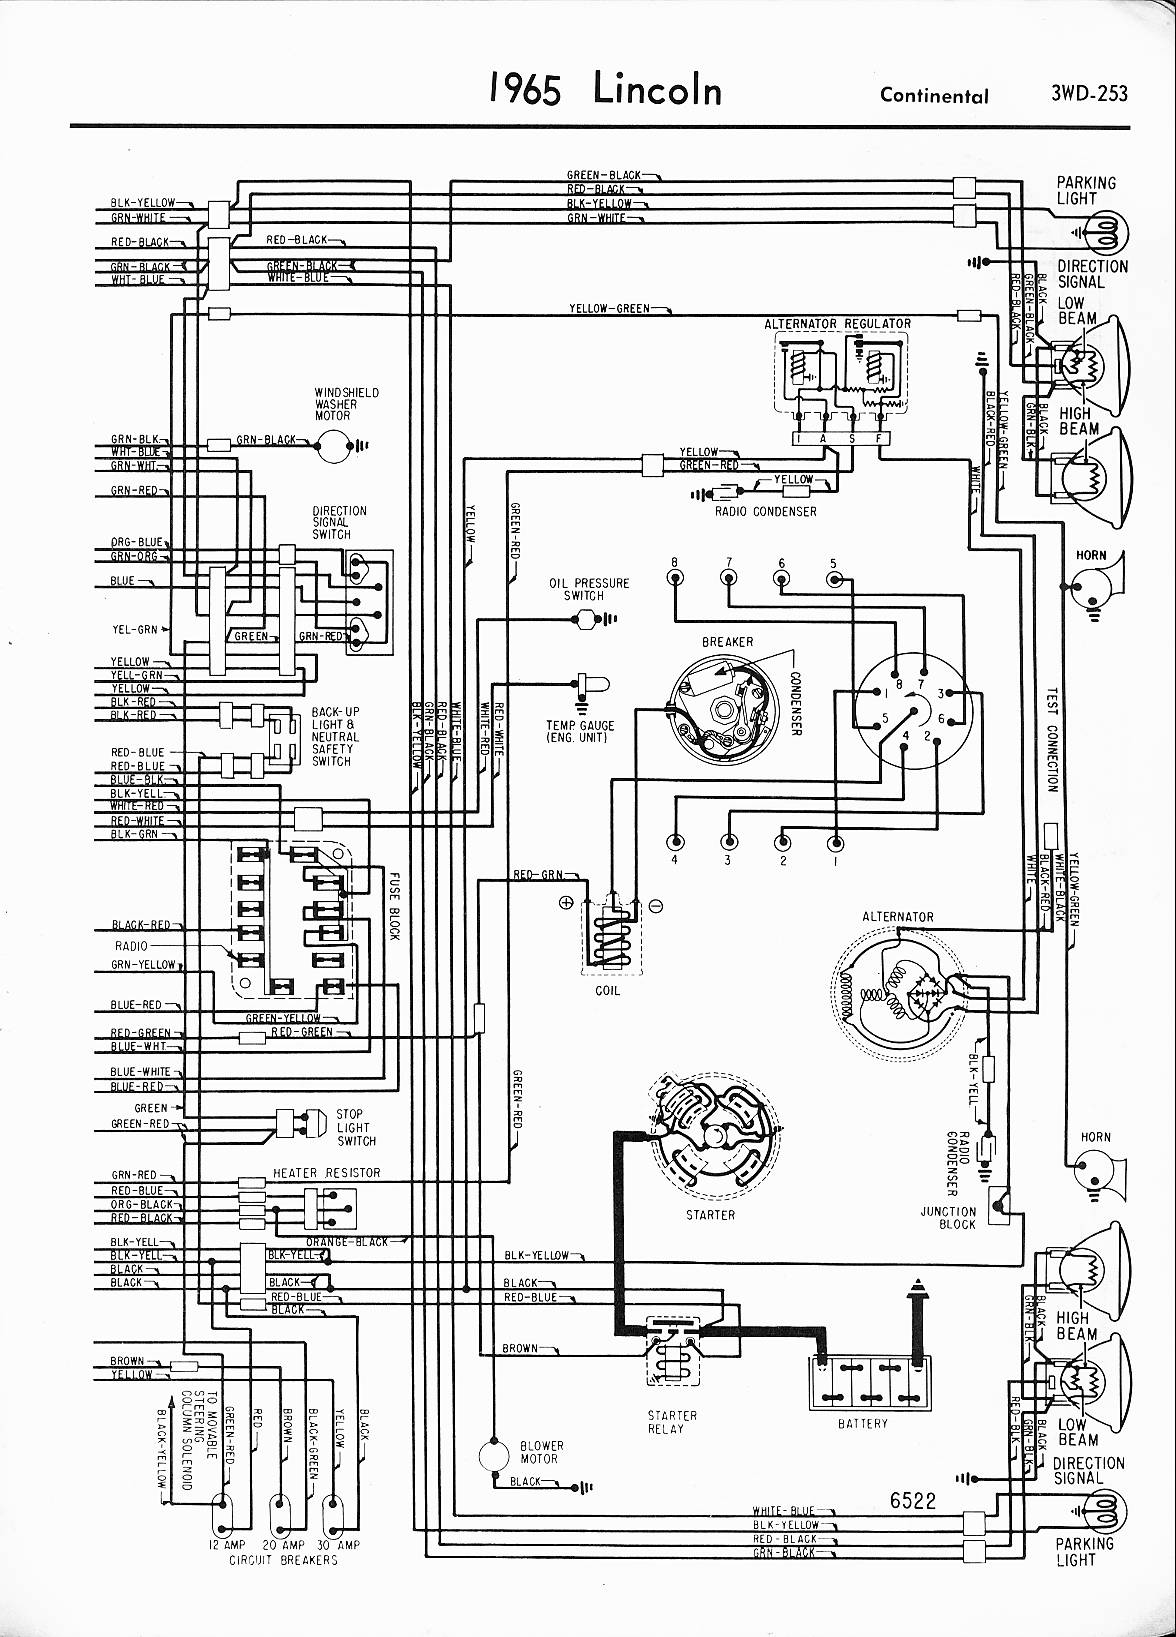 1965 lincoln wiring diagram wire center u2022 rh grooveguard co 1969 lincoln continental window wiring diagram 1969 lincoln continental power window wiring diagram